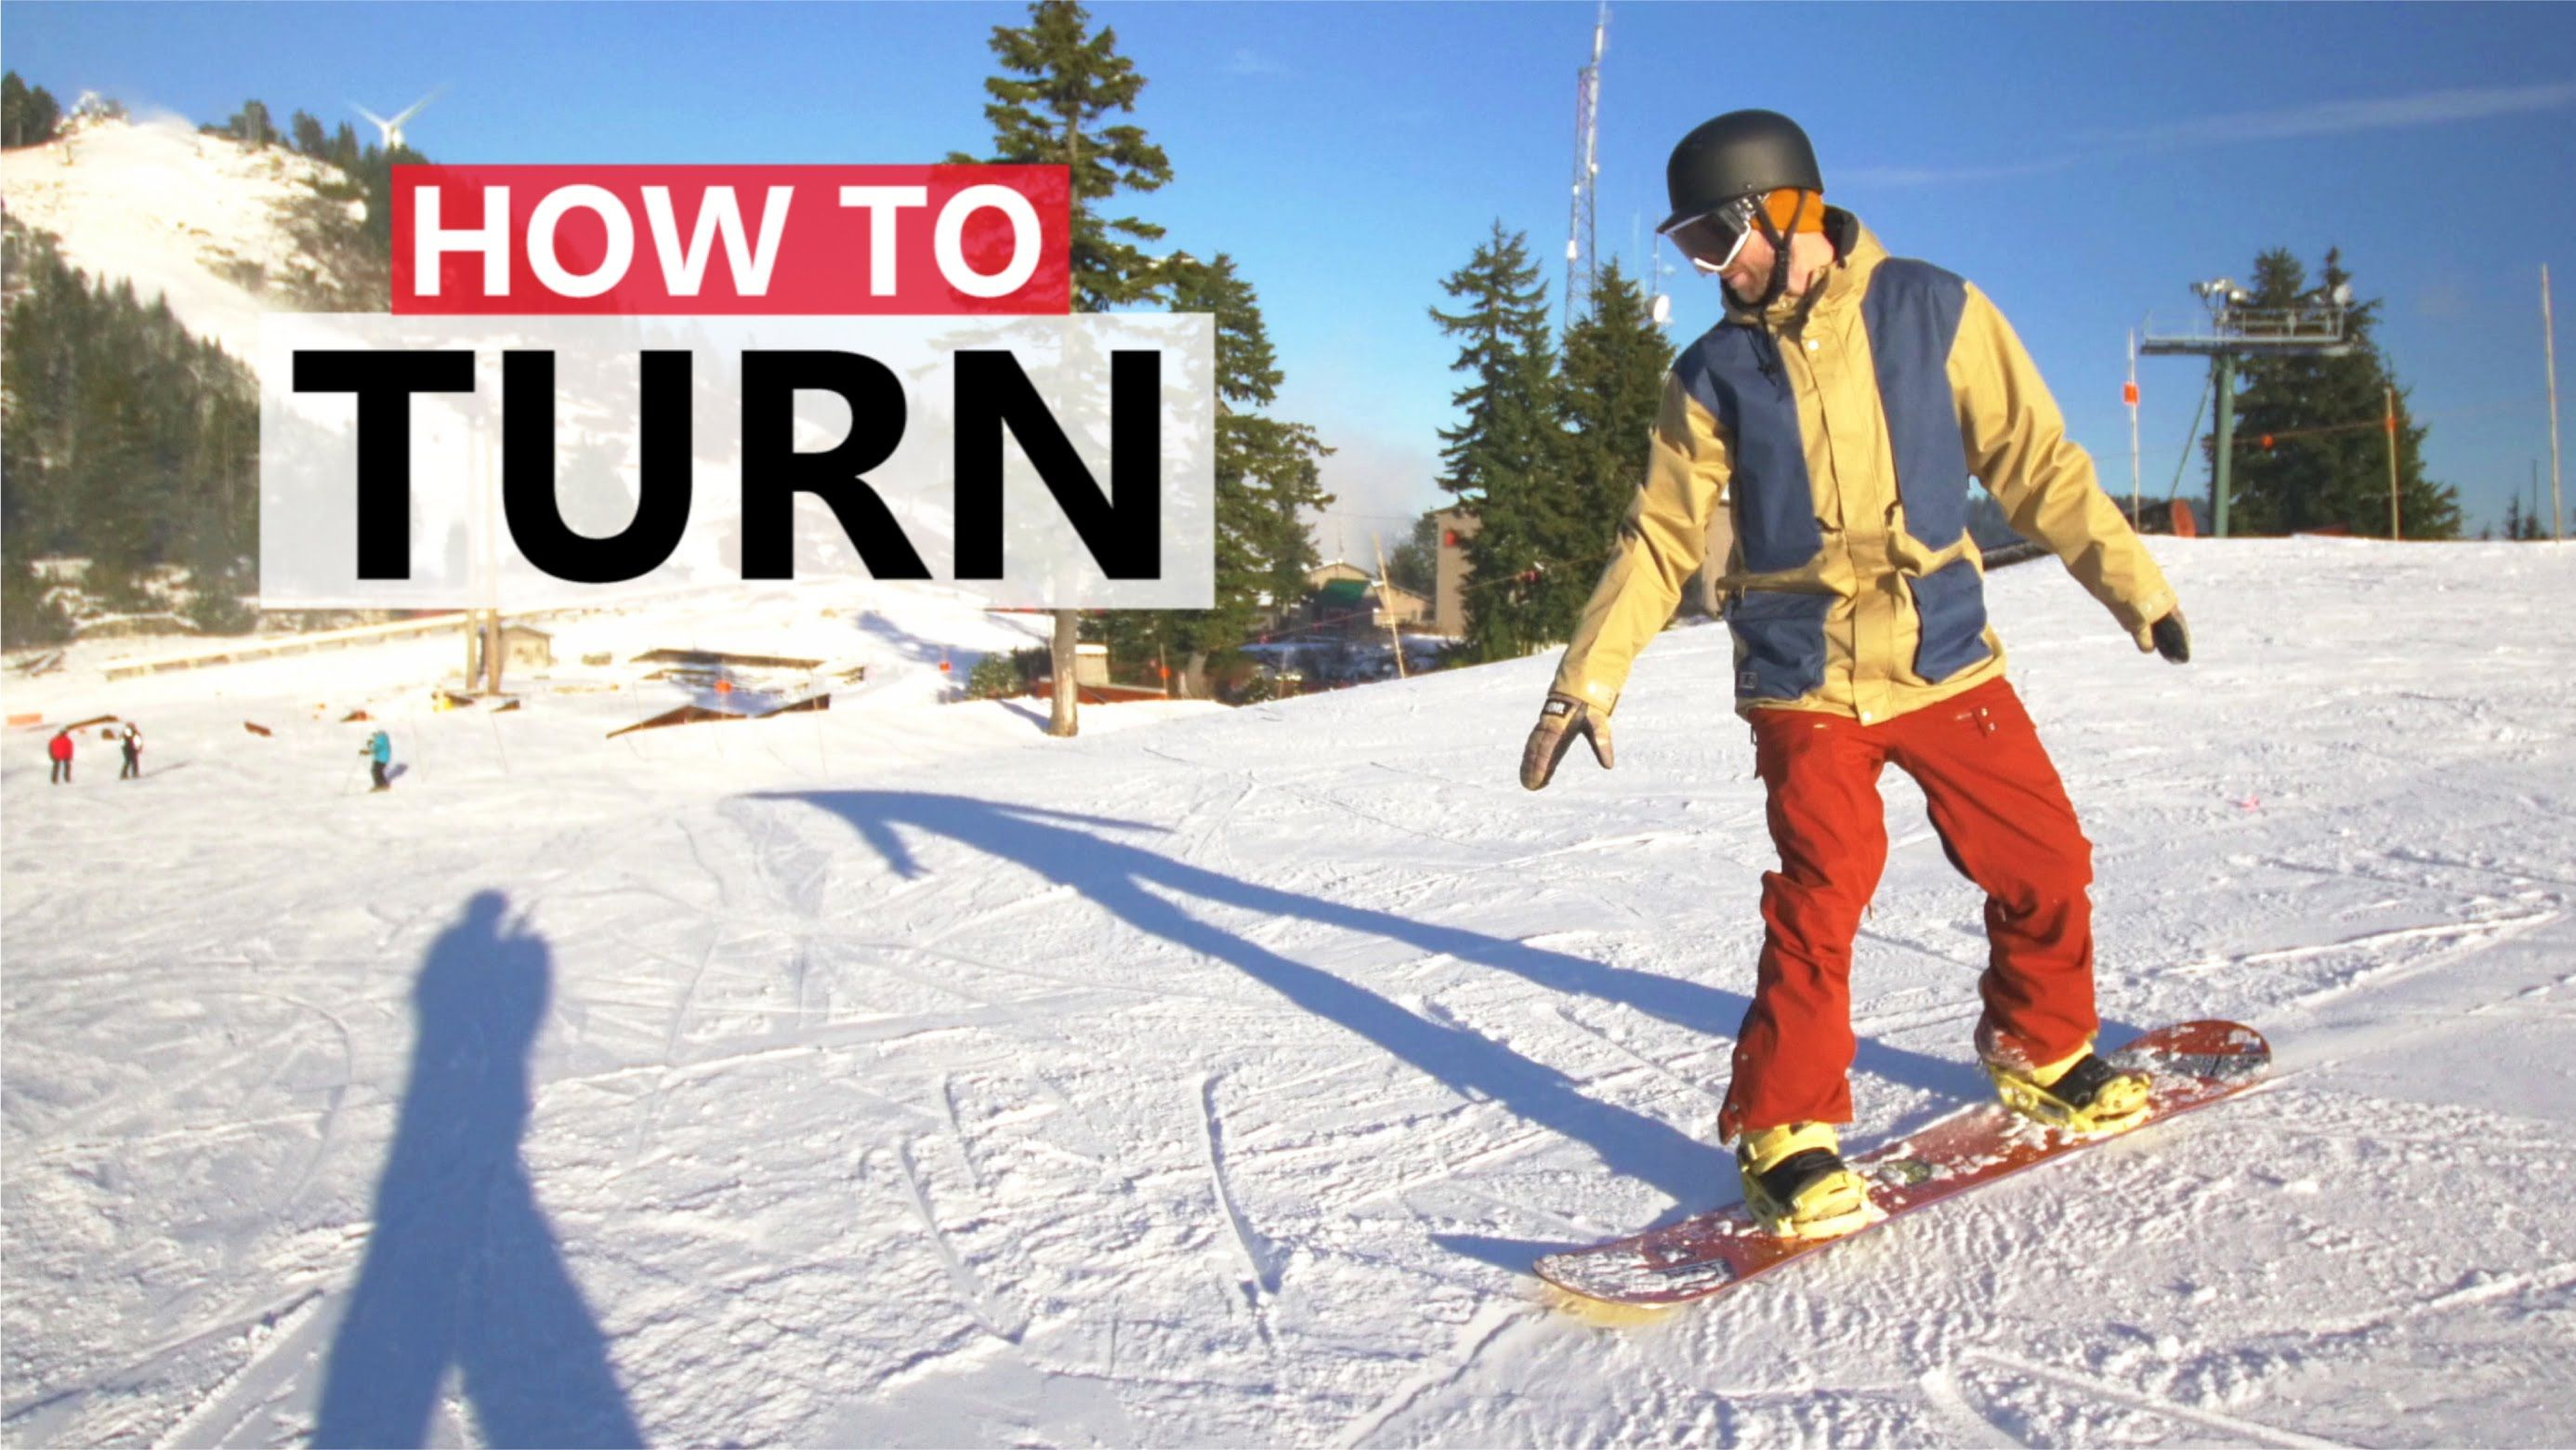 How To Turn On A Snowboard How To Snowboard Snowboarding For Beginners Snowboarding Snowboarding Tips